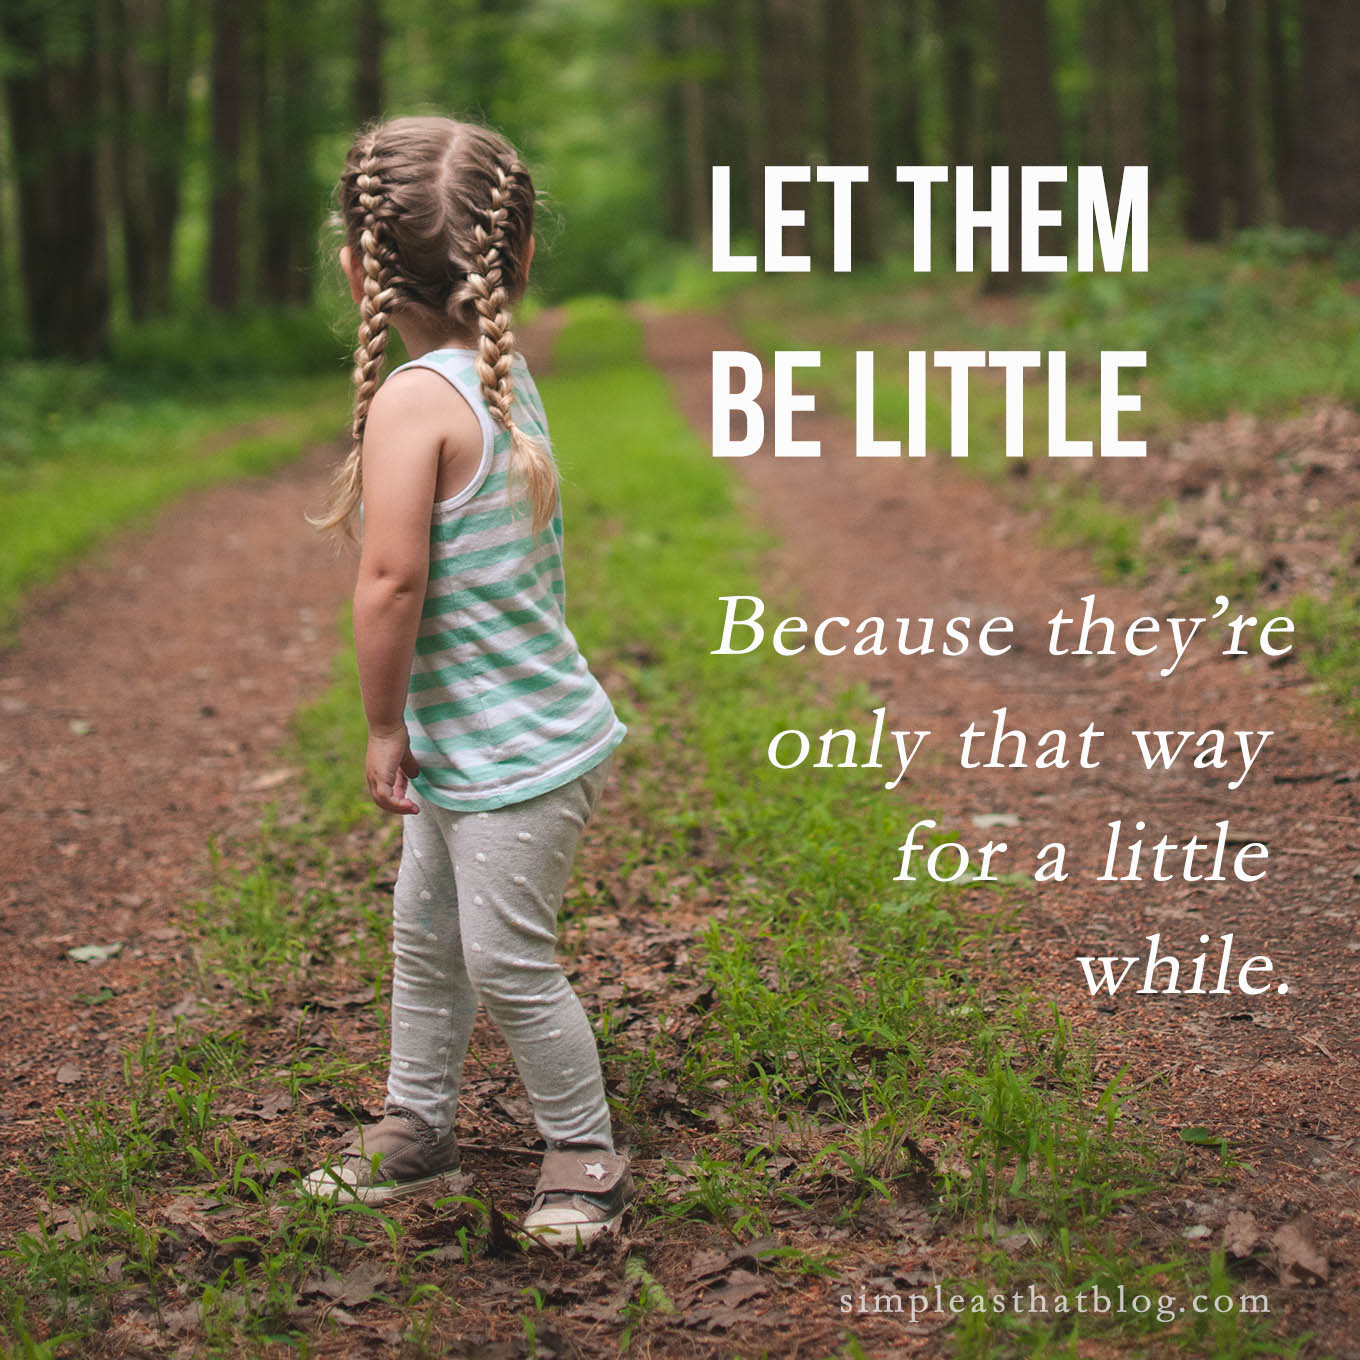 May we all remember to allow our children the space to be little (even if they are a bit big).